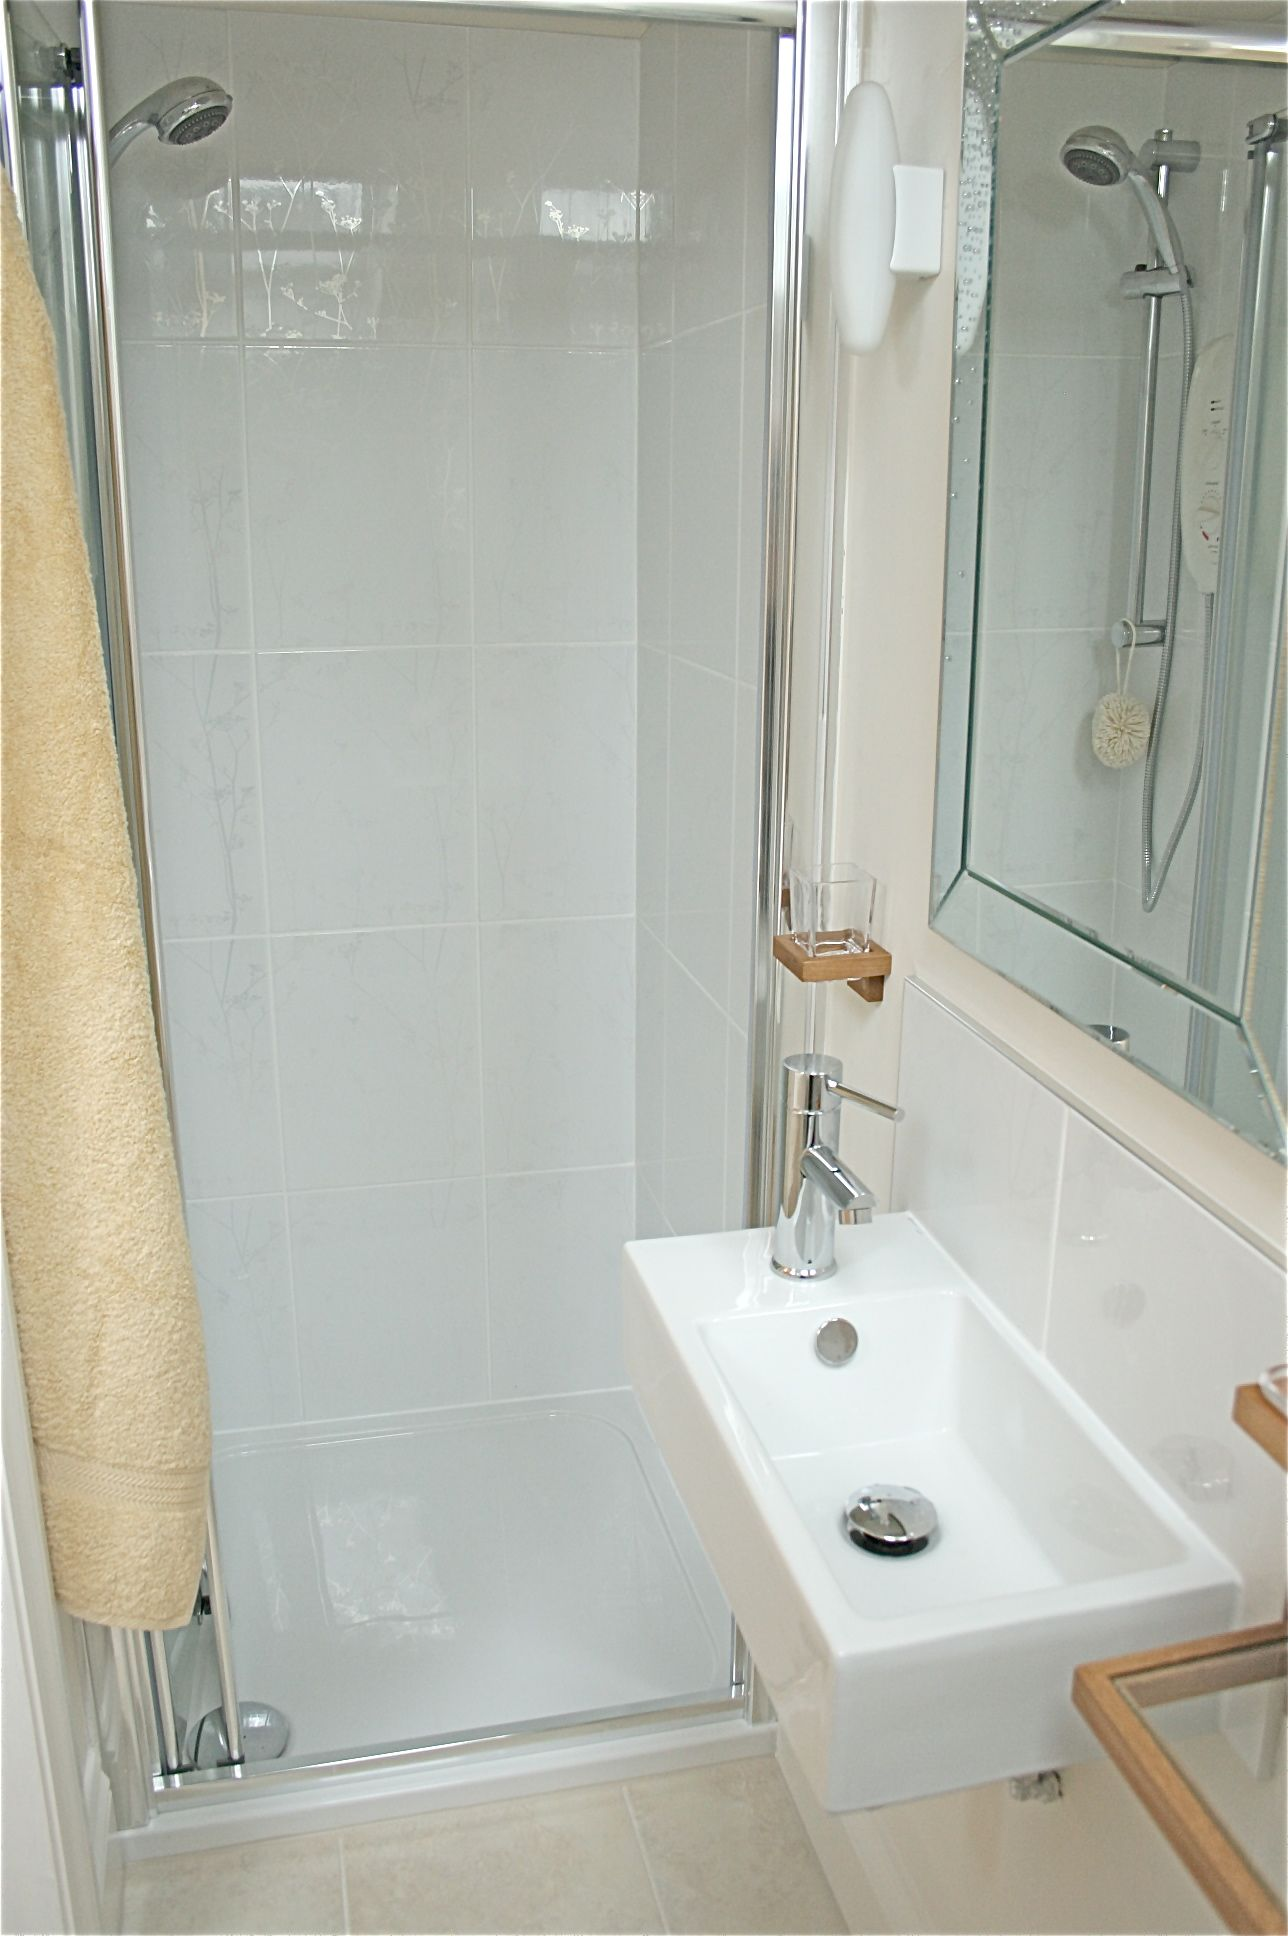 tiny shower room designs google search - Small Shower Room Ideas